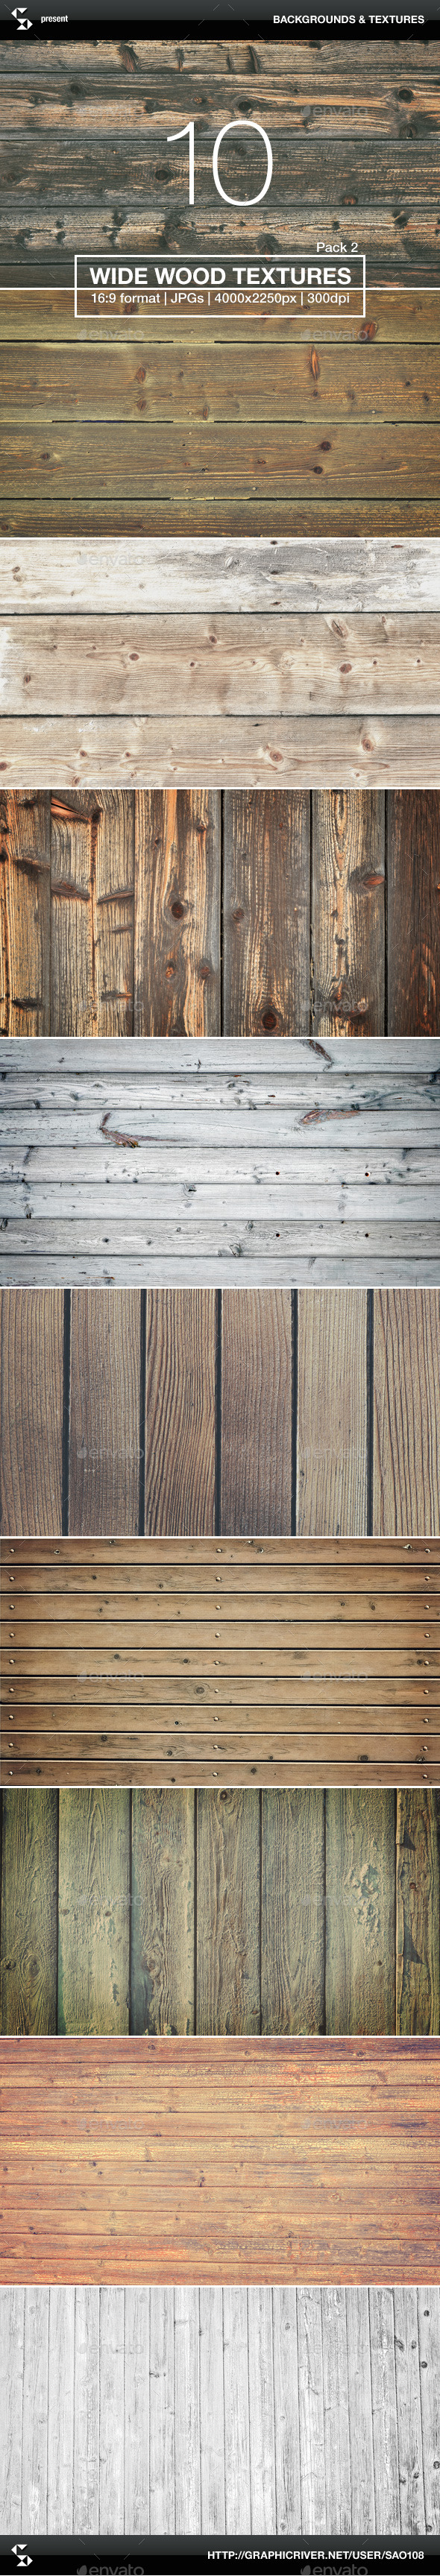 GraphicRiver 10 Wide Wood Textures 2 Wood Backgrounds 10426210